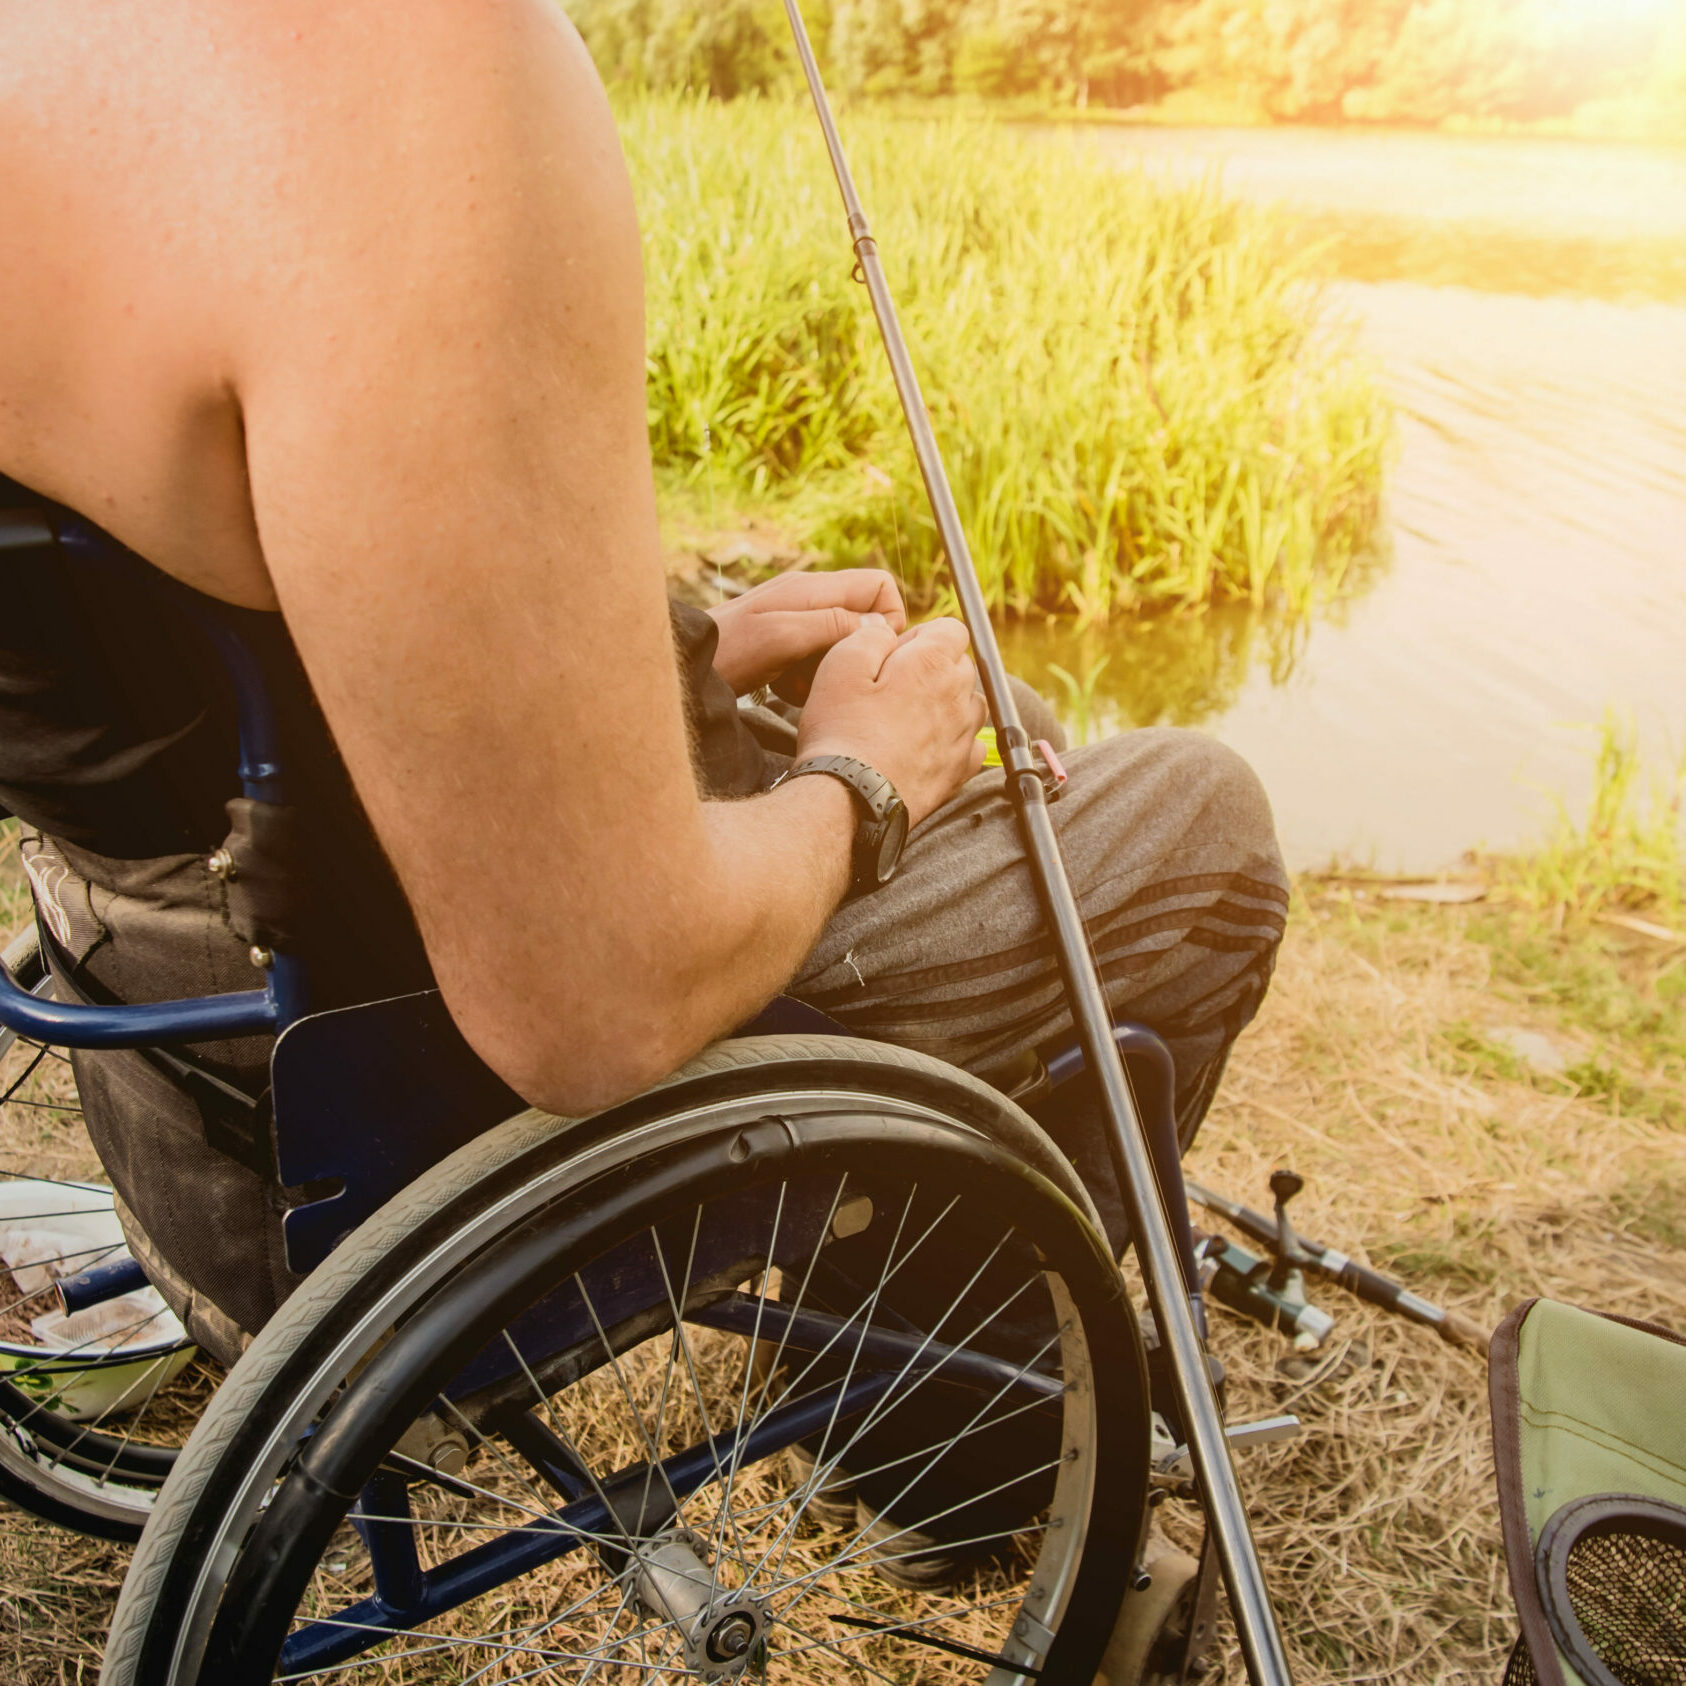 Handicapped man fishing at a lake. Wheelchair. Camping. Summertime